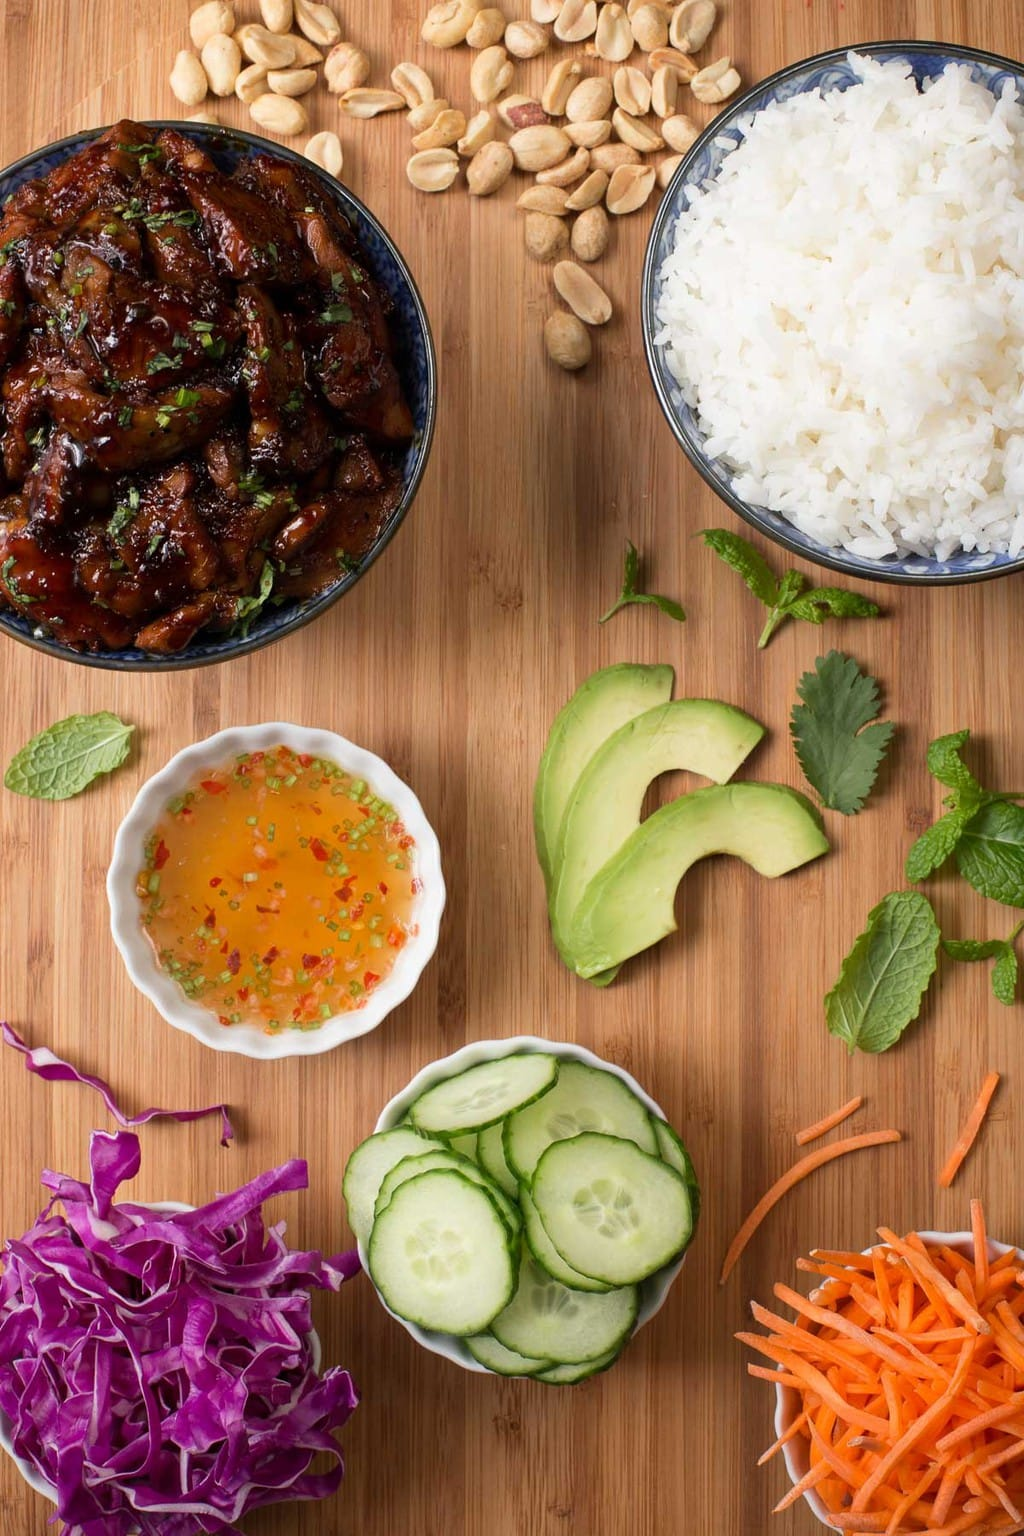 Overhead photo of the separate ingredients used to make Easy Vietnamese Caramelized Pork.